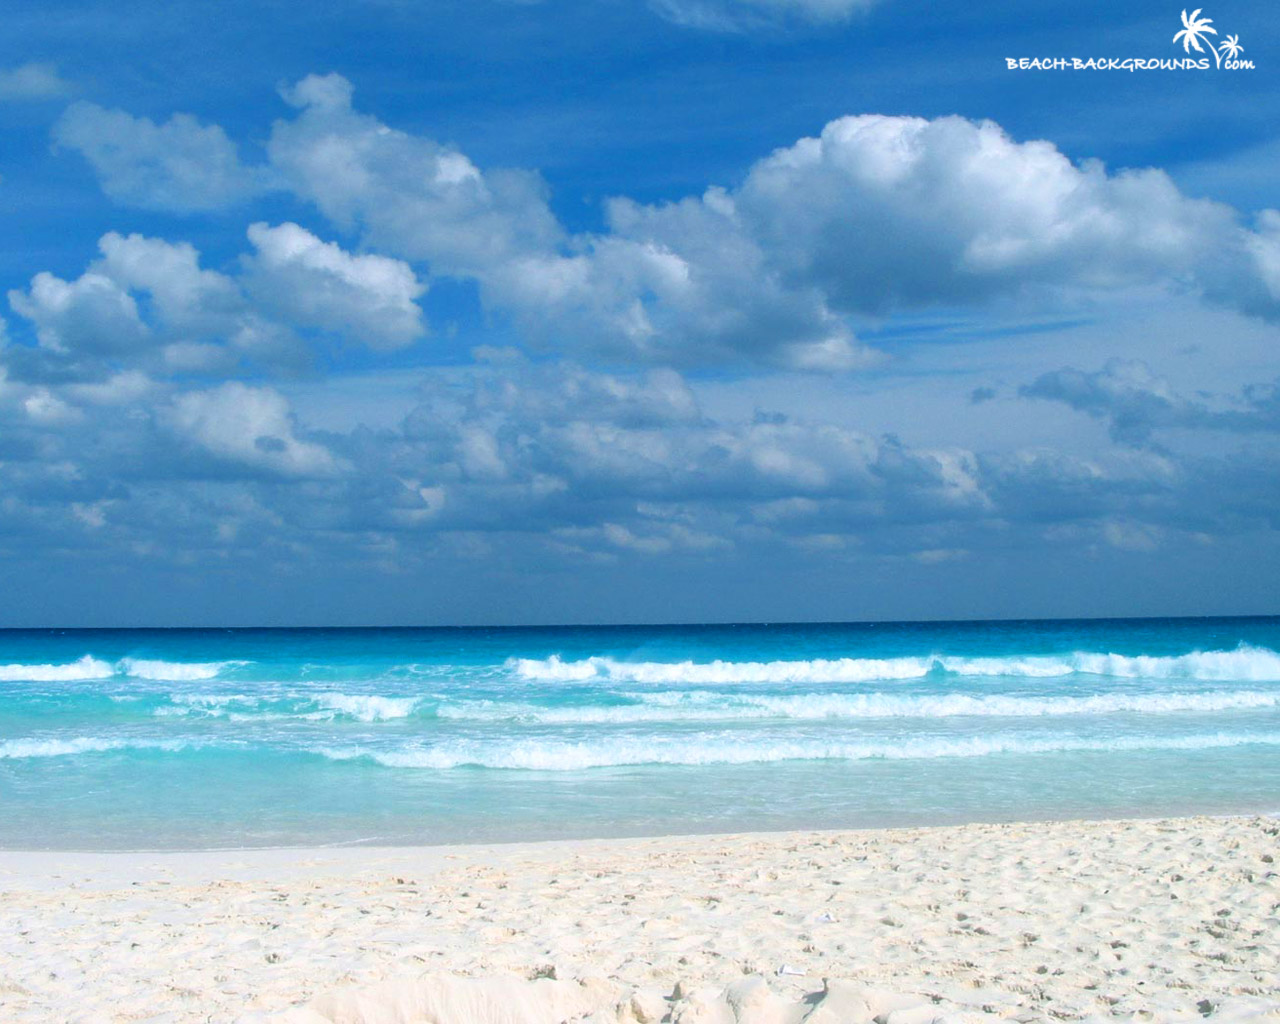 http://4.bp.blogspot.com/_bEs2Bos8R_Q/SxM5_97HT6I/AAAAAAAABFE/_v2hHQEegVQ/s1600/stunning-view-from-the-caribbean-beach-background-1280x1024.jpg